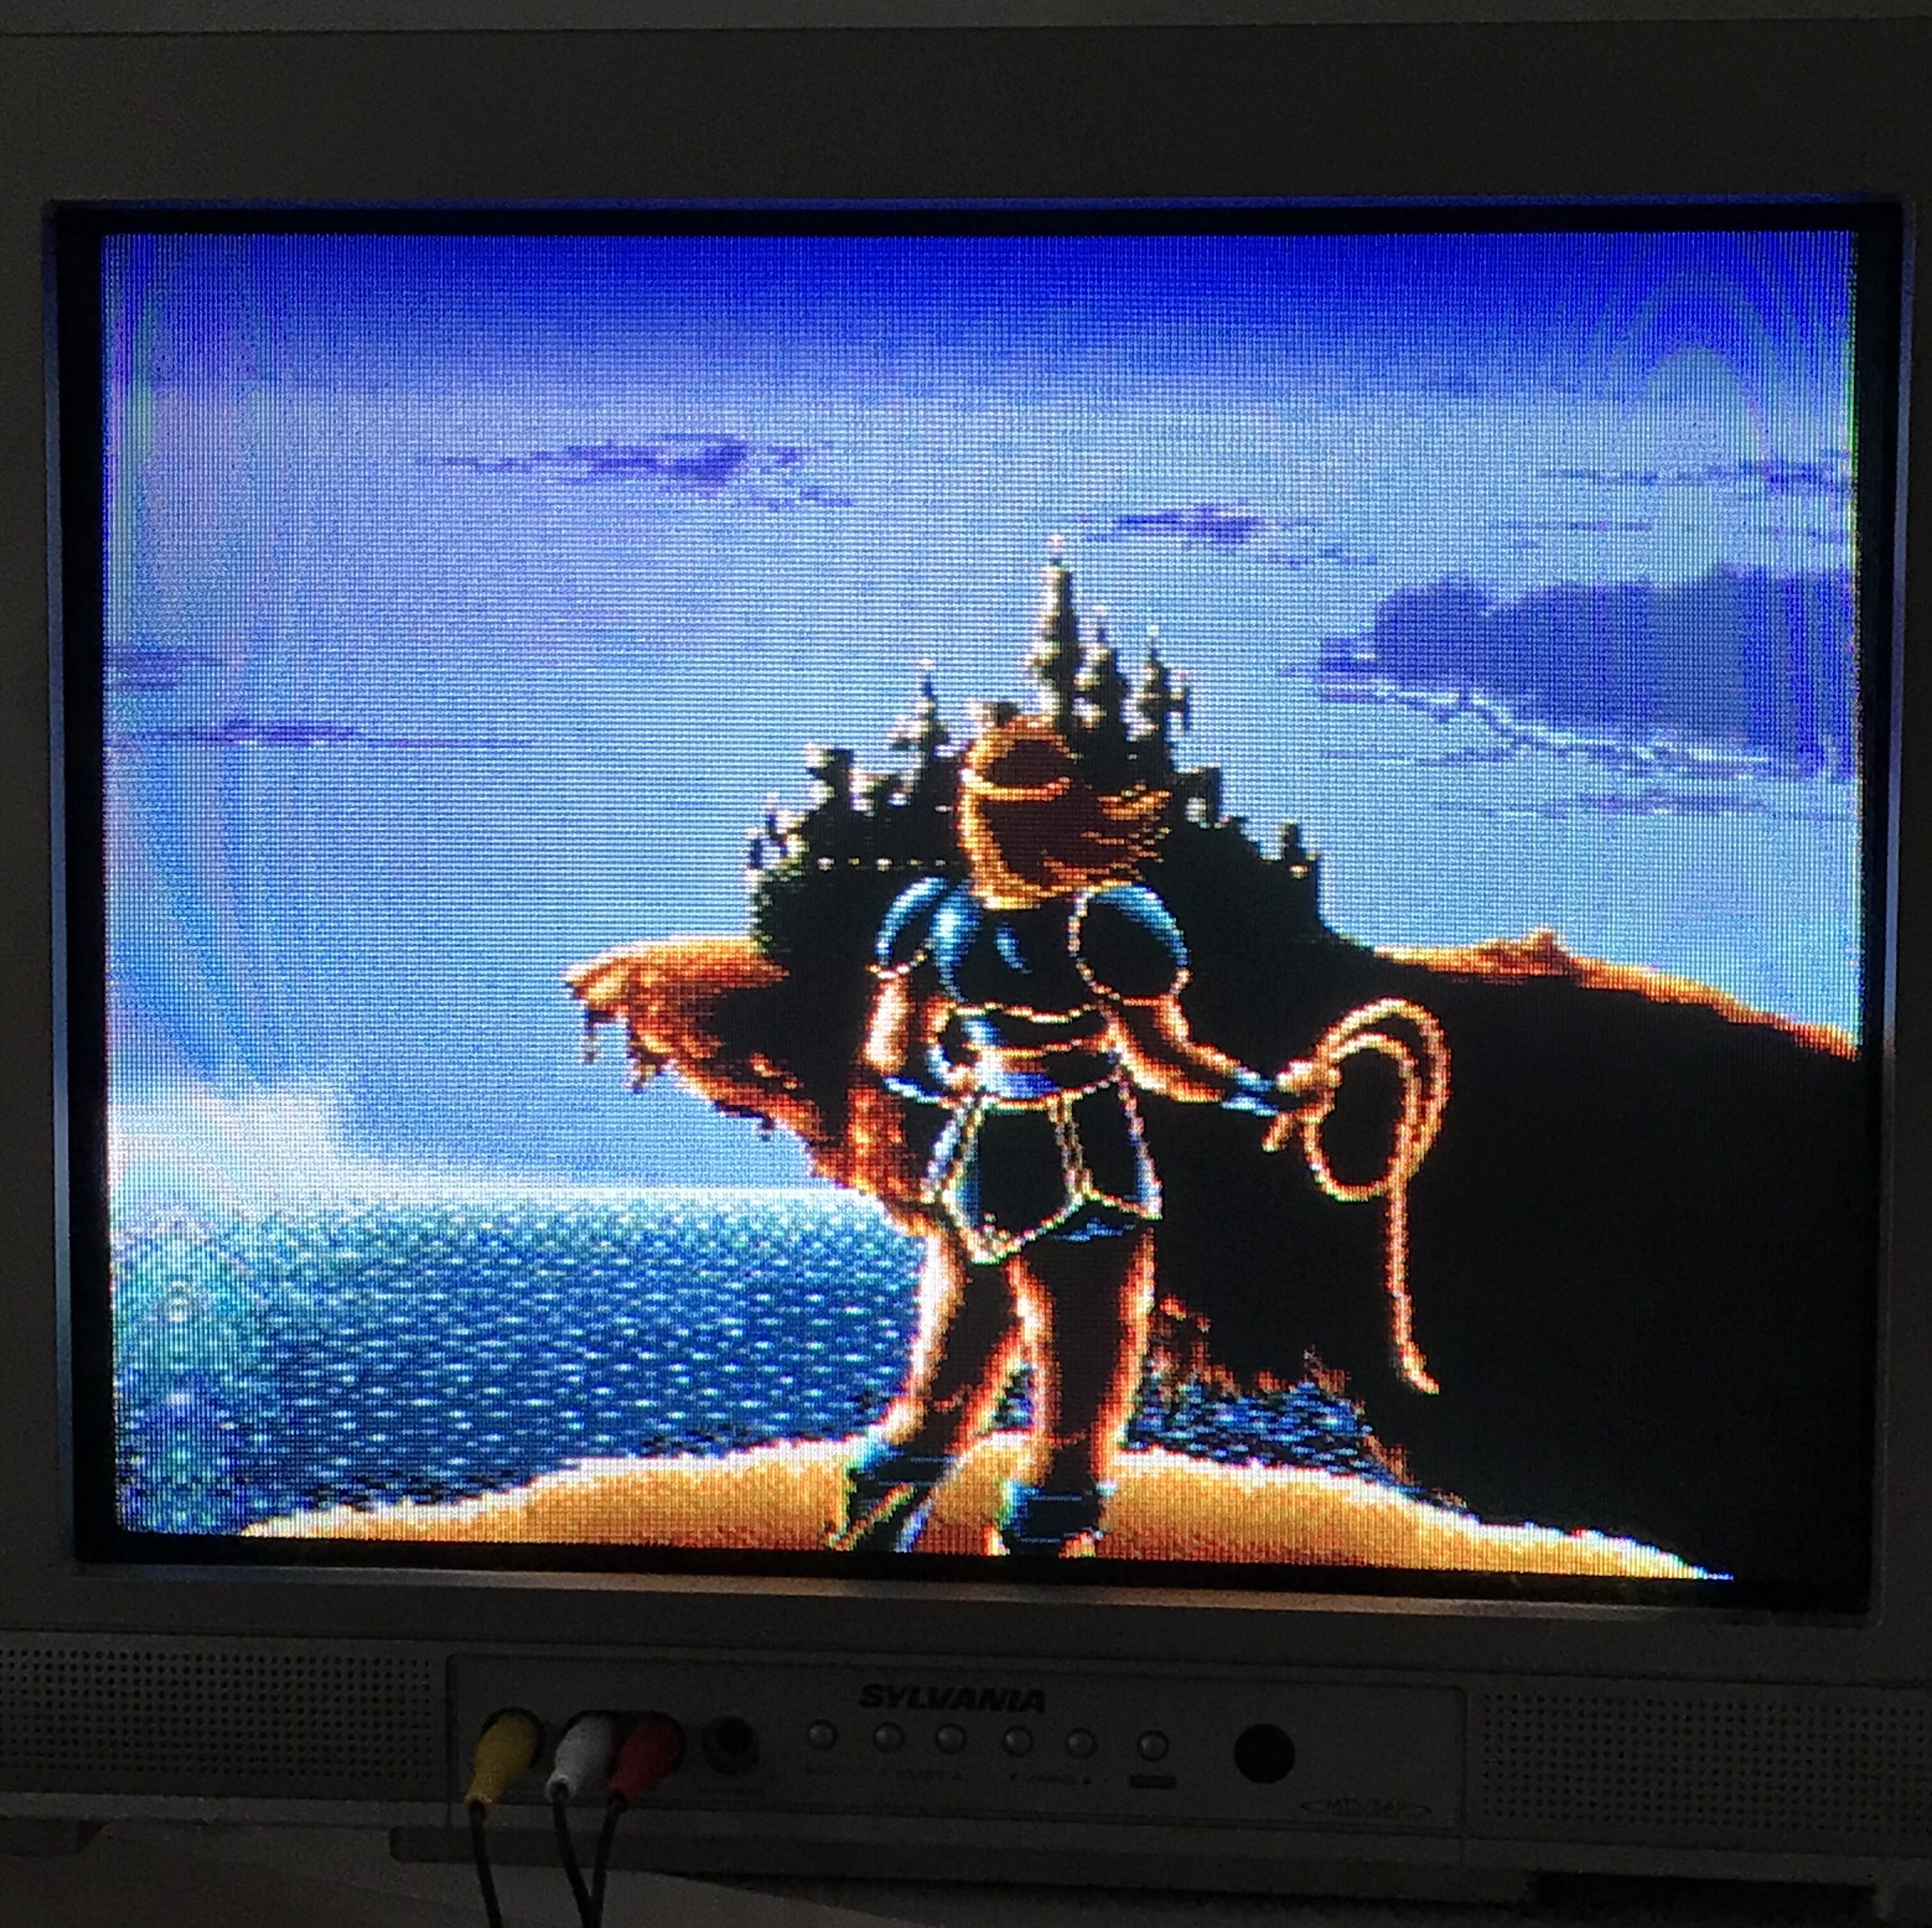 I spent the most time playing Super Castlevania IV and I finally beat it.